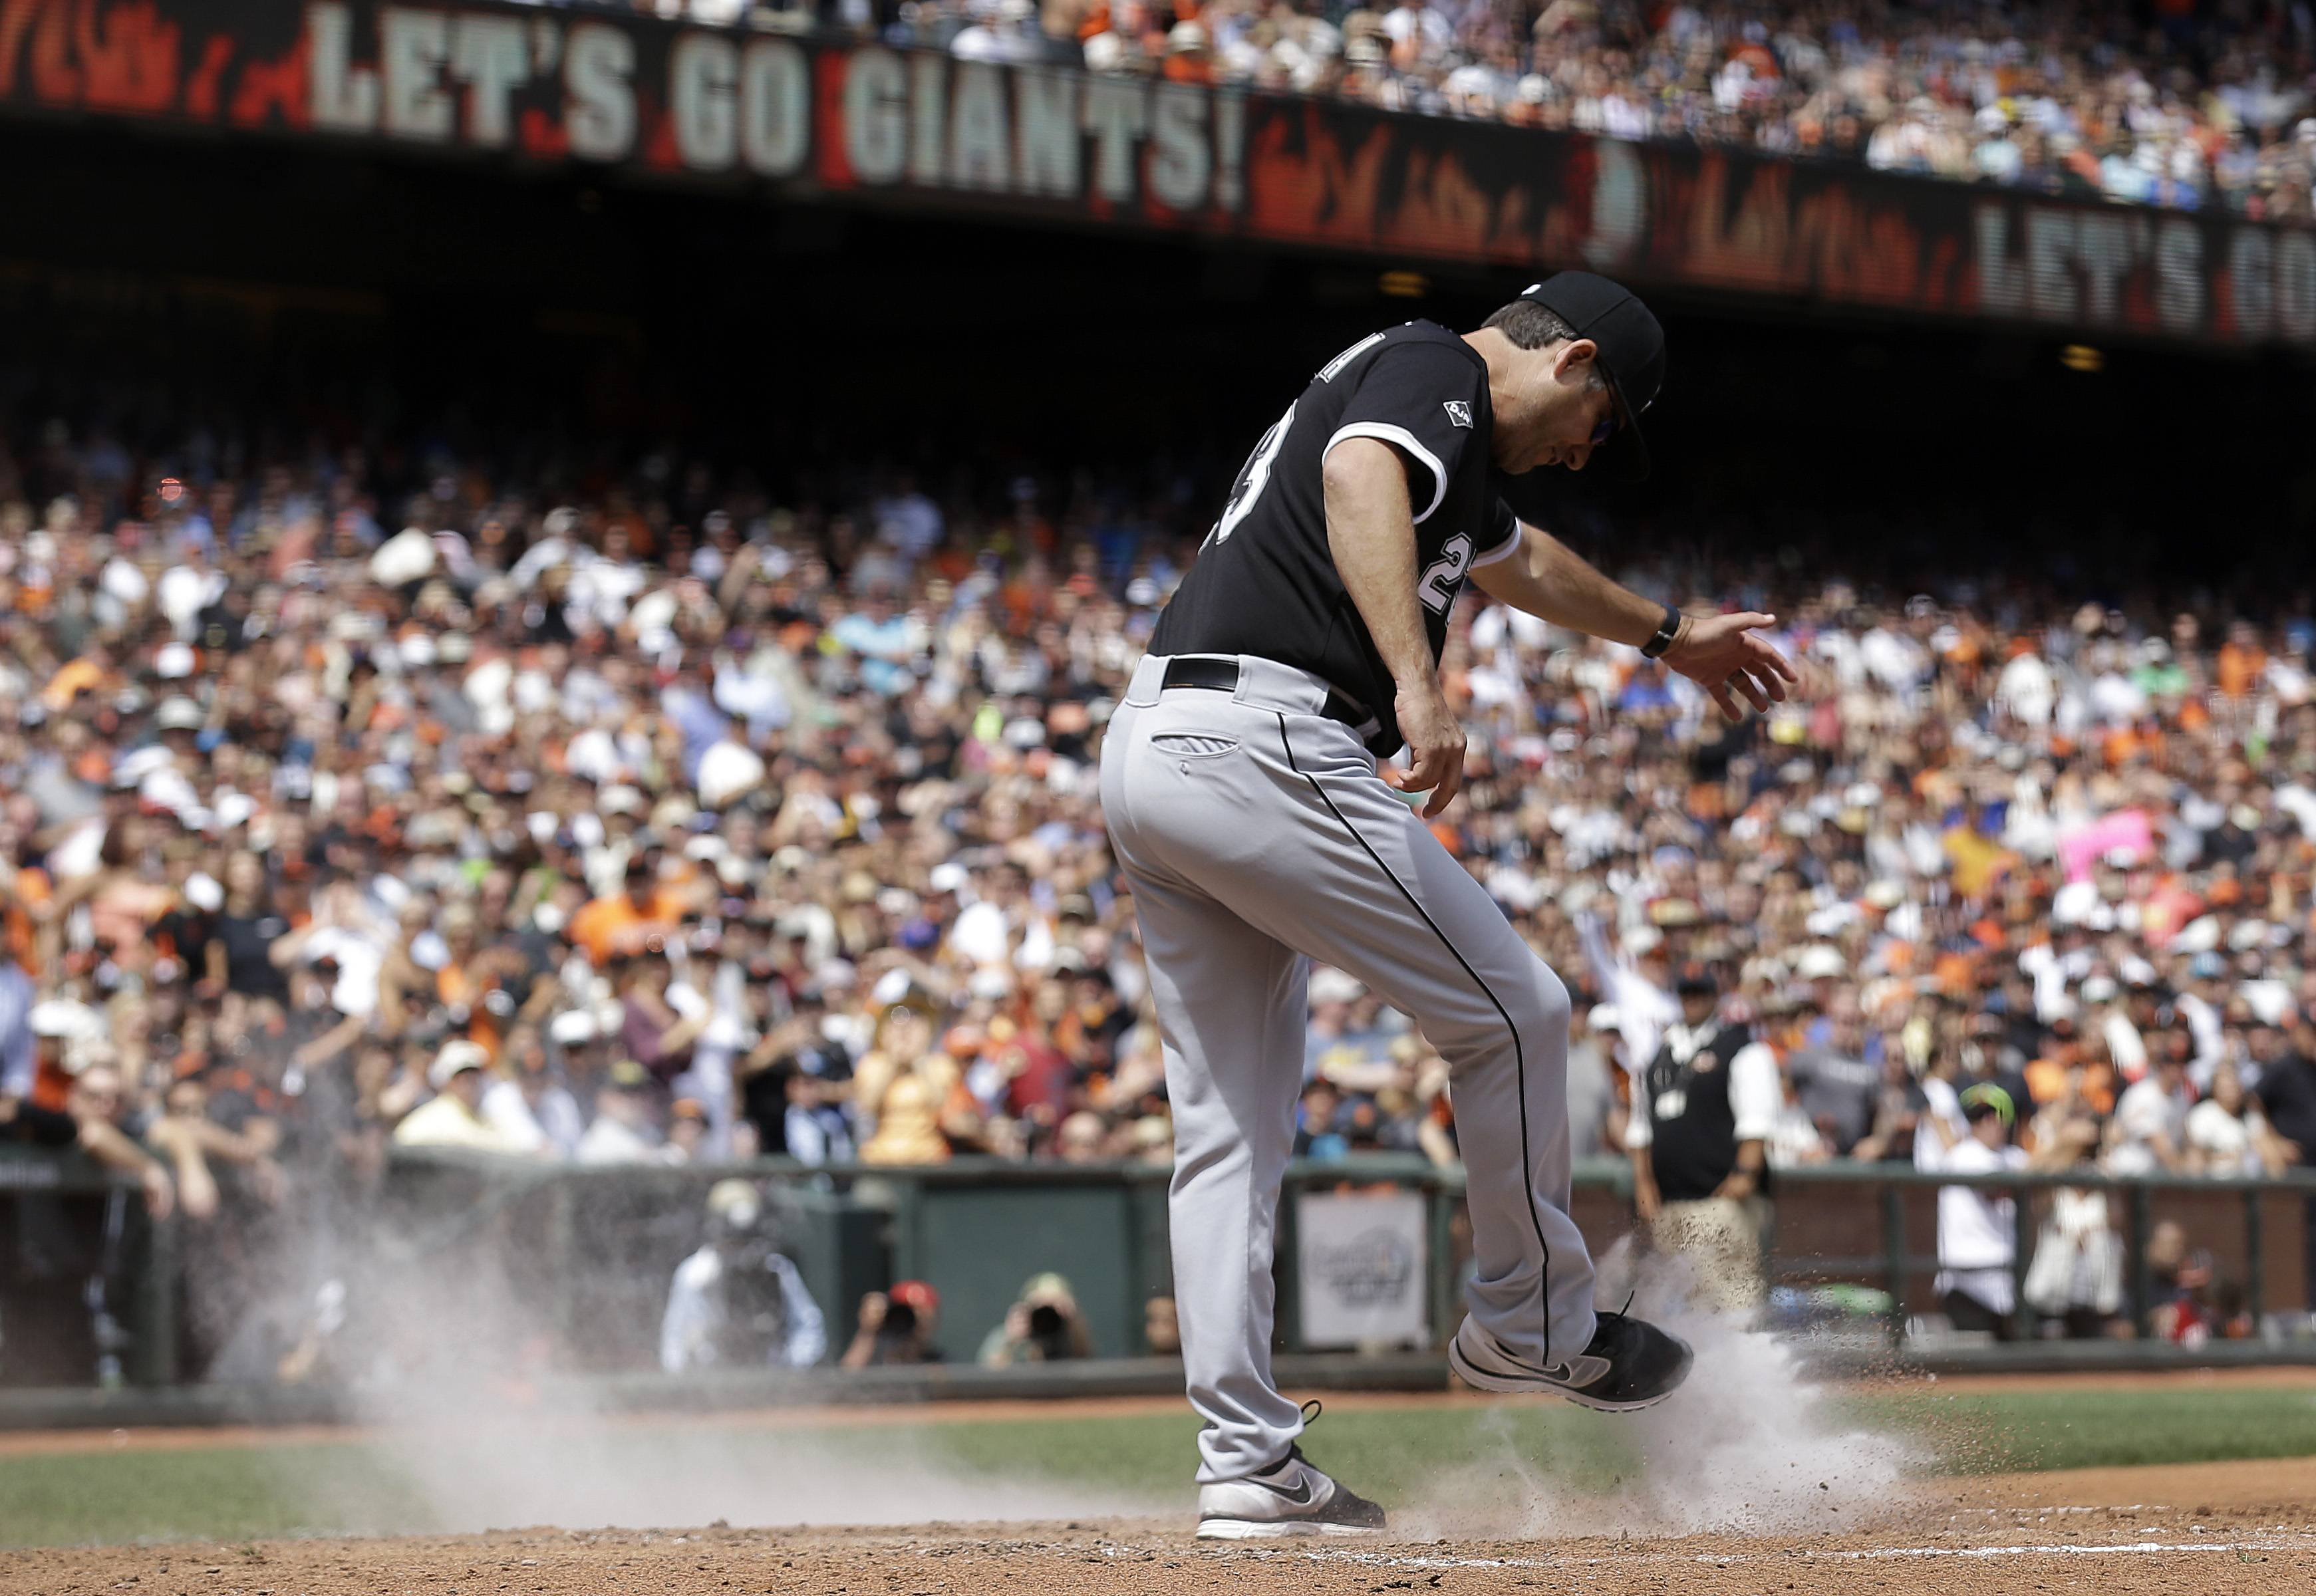 White Sox manager Robin Ventura kicks dirt over the plate Wednesday after being ejected for arguing a call on San Francisco Giants' Gregor Blanco, who was originally ruled out at home but then ruled safe after review, during the seventh inning in San Francisco.